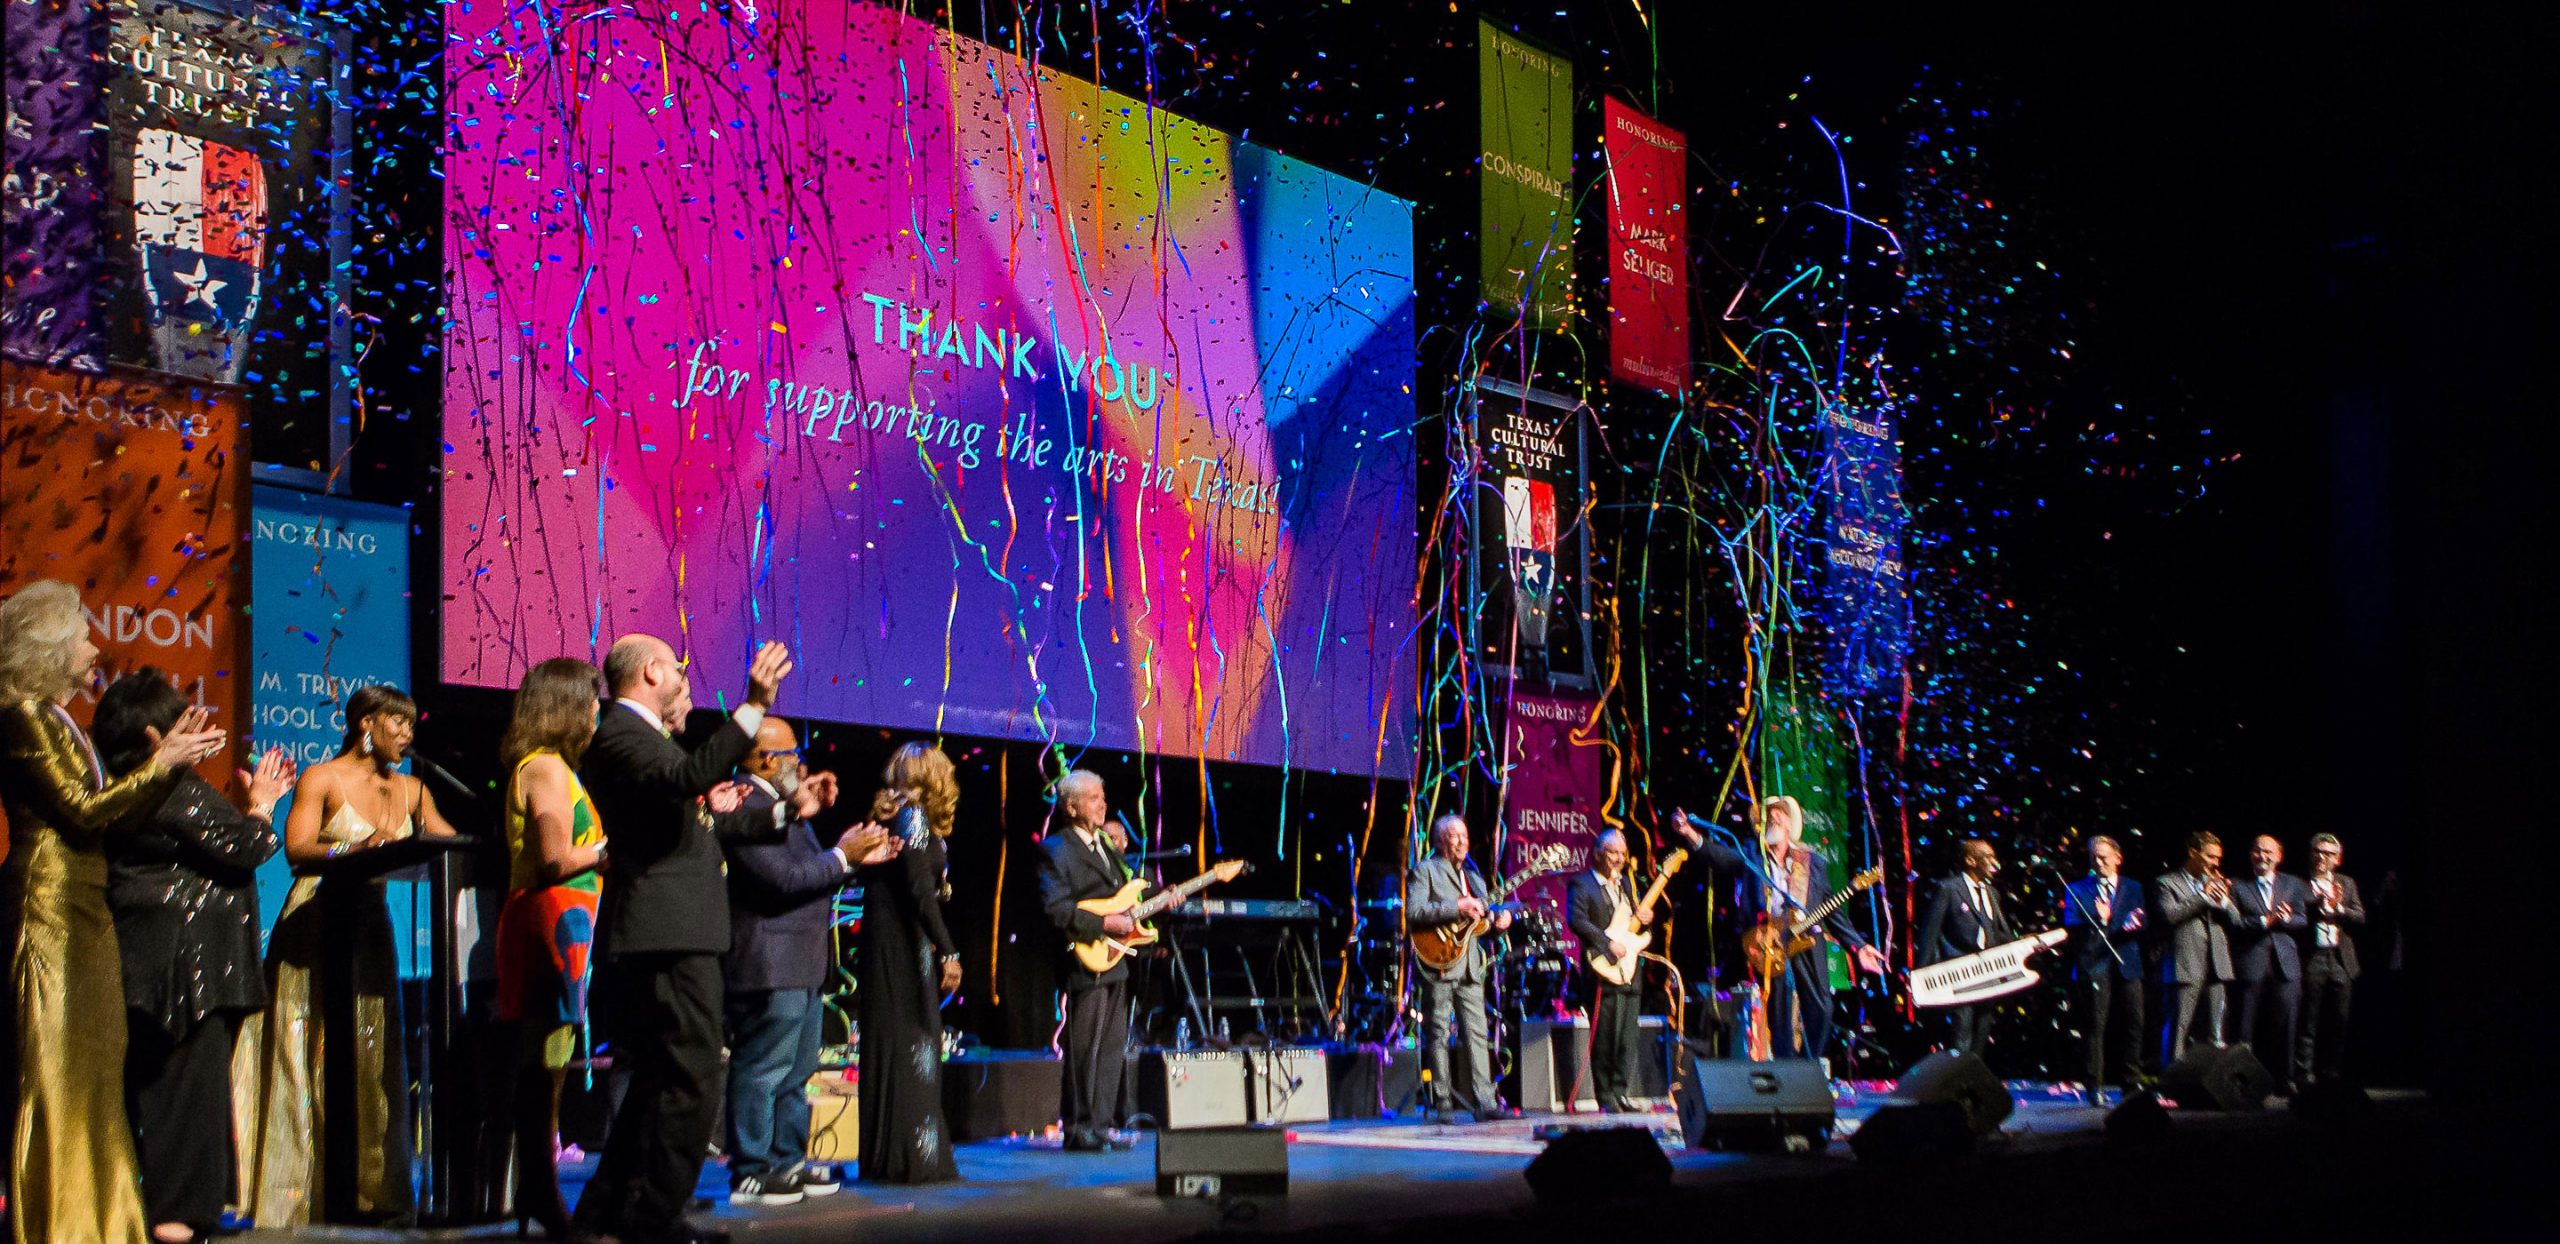 Confetti falls on a stage of honorees in thanks of supporting the arts in Texas